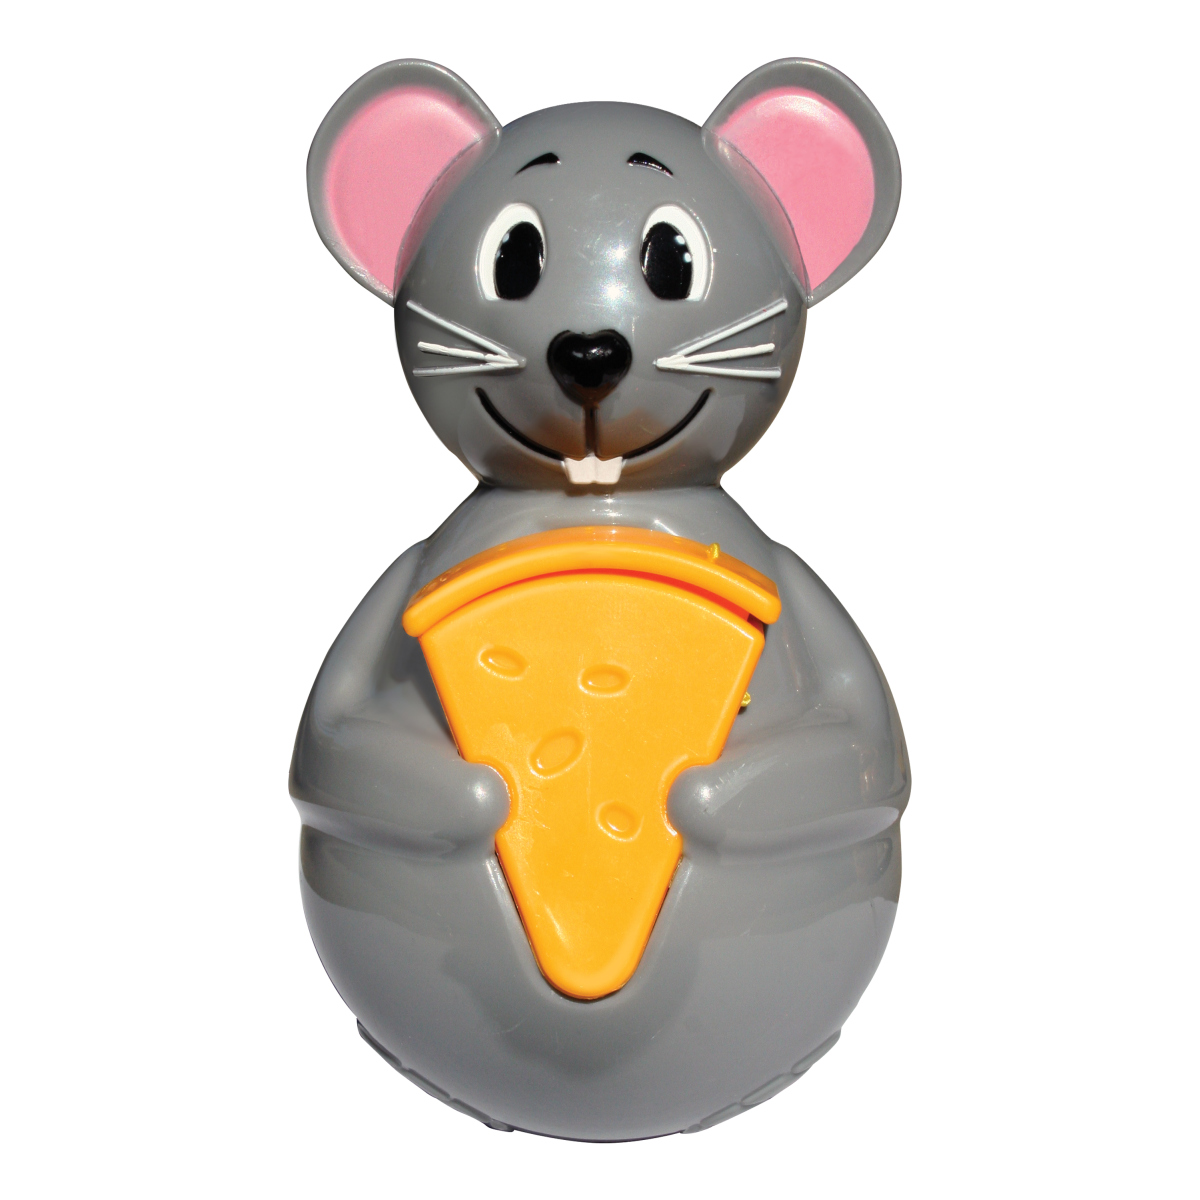 KO BAT-A-BOUT CHIME MOUSE 00001